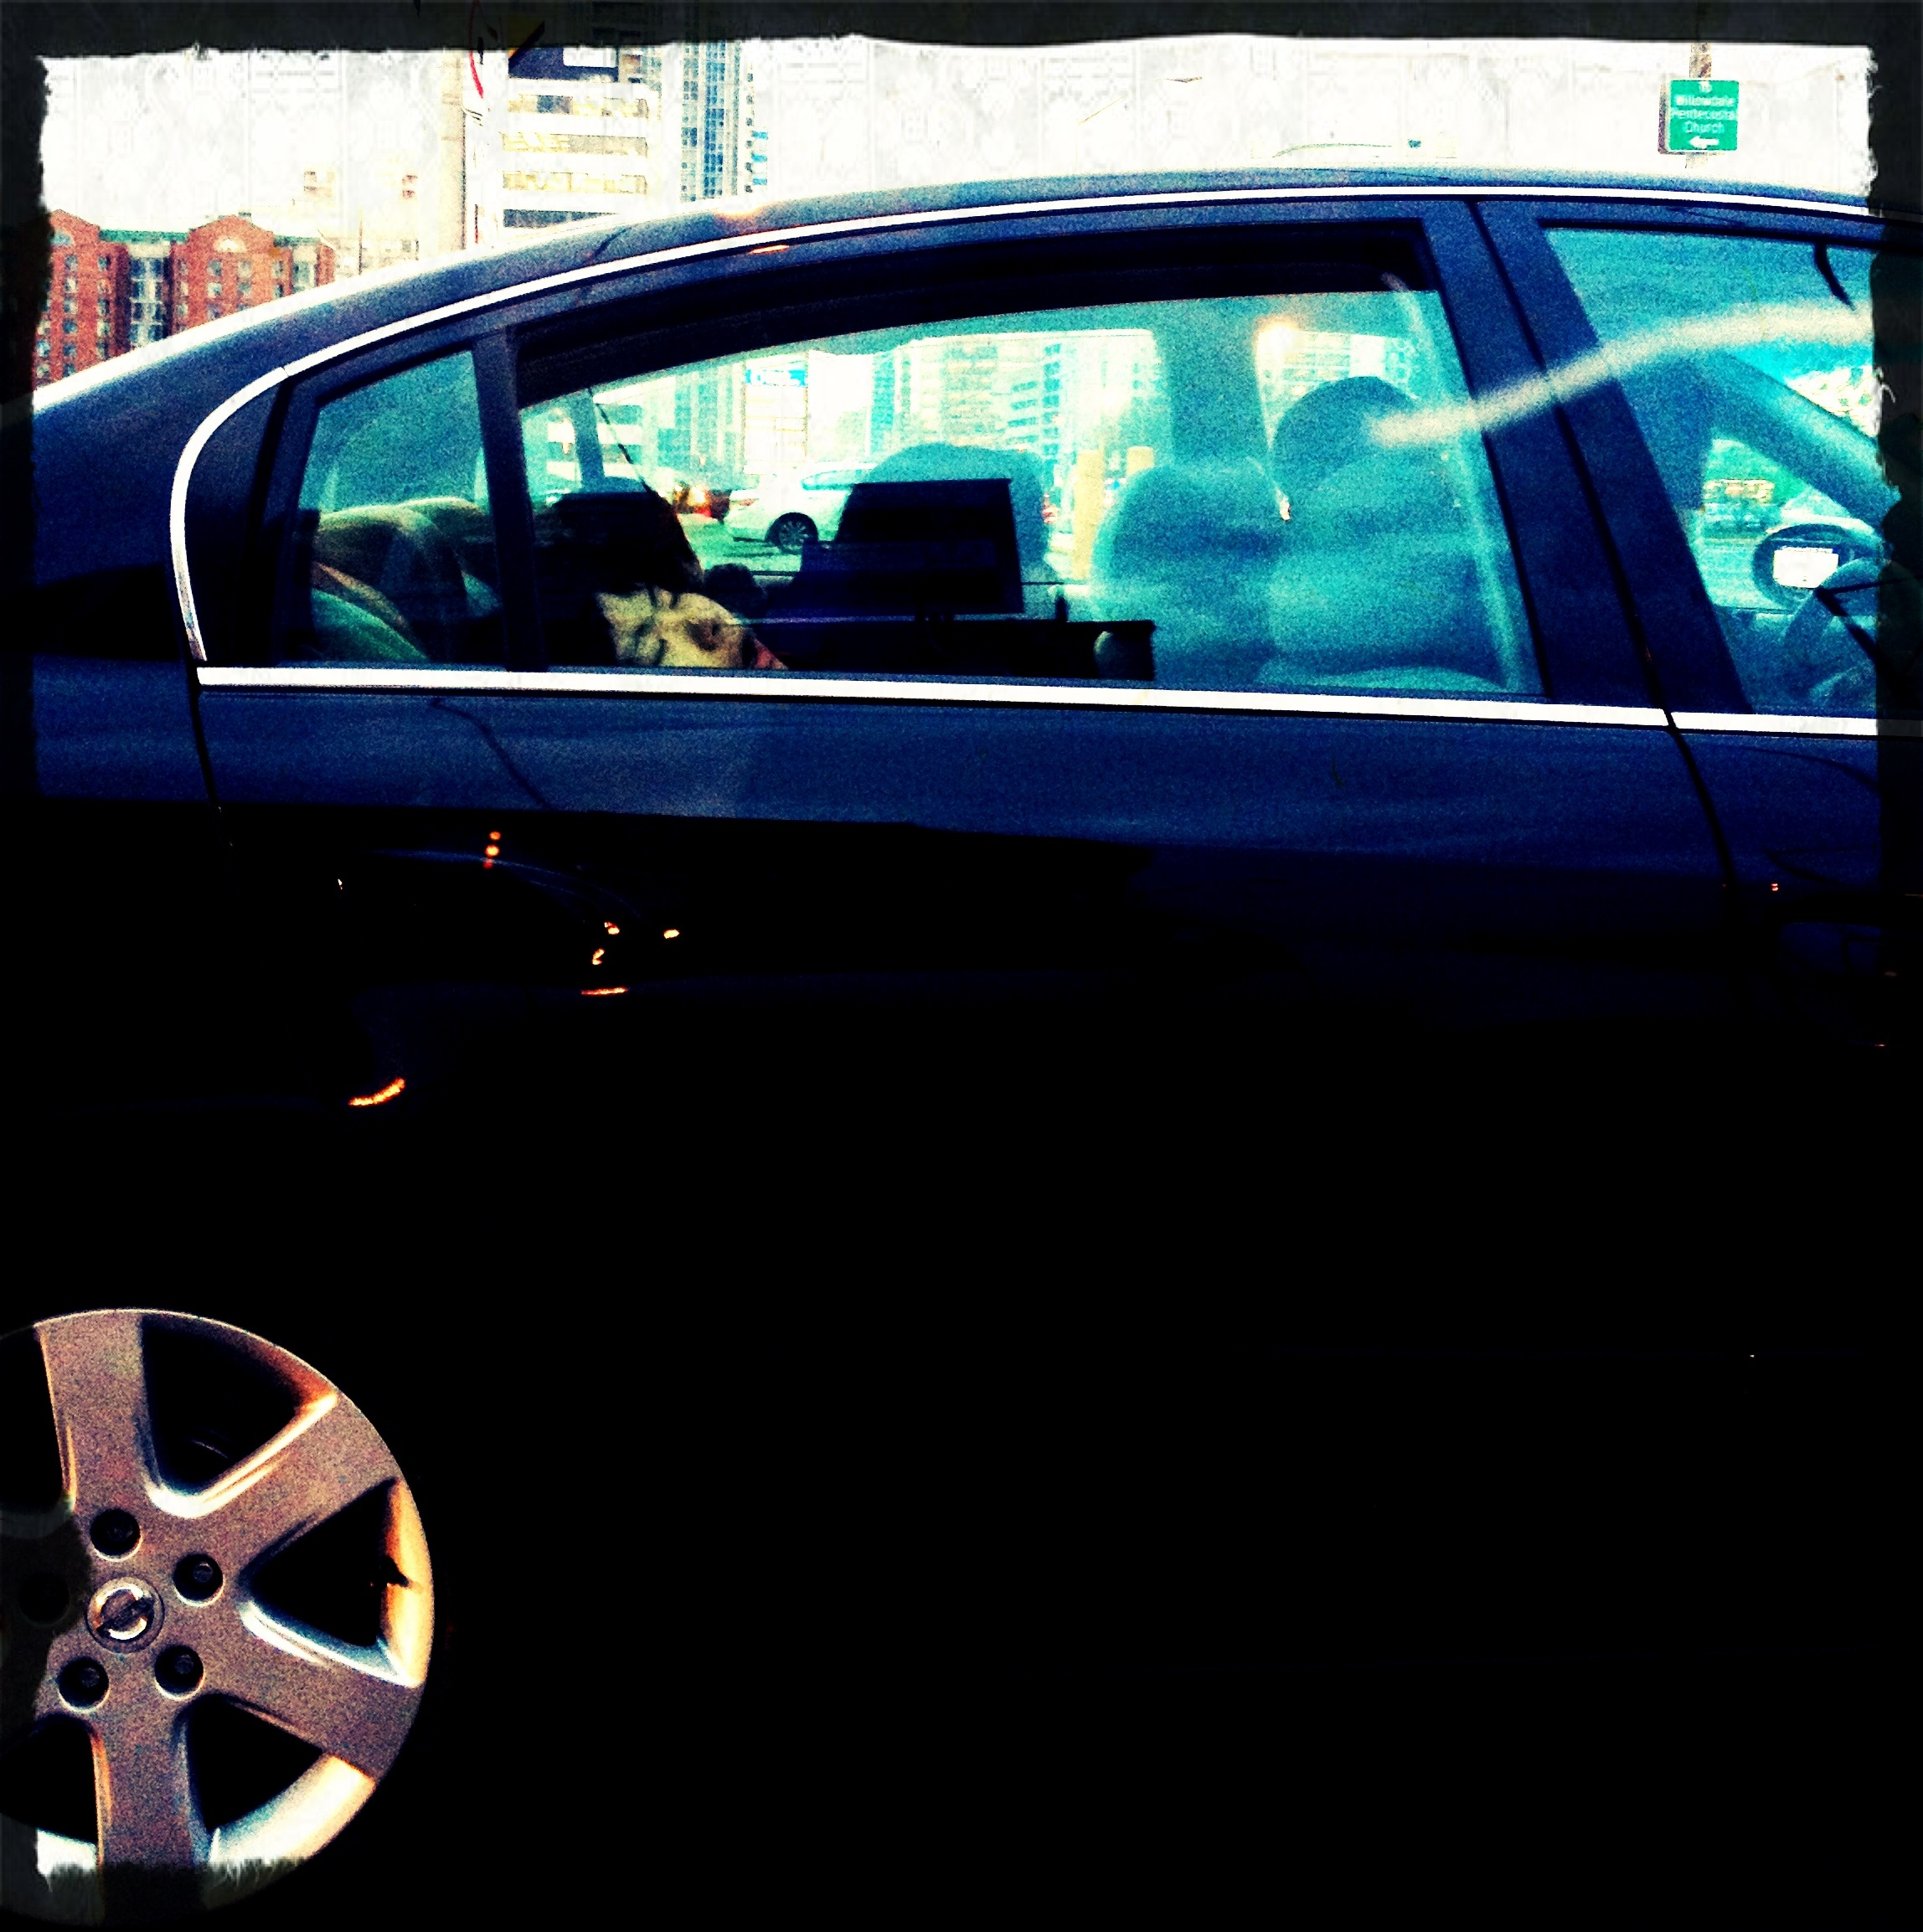 """""""Surfacing"""" - Car passenger naps in the rear-seat, Willowdale, Toronto"""